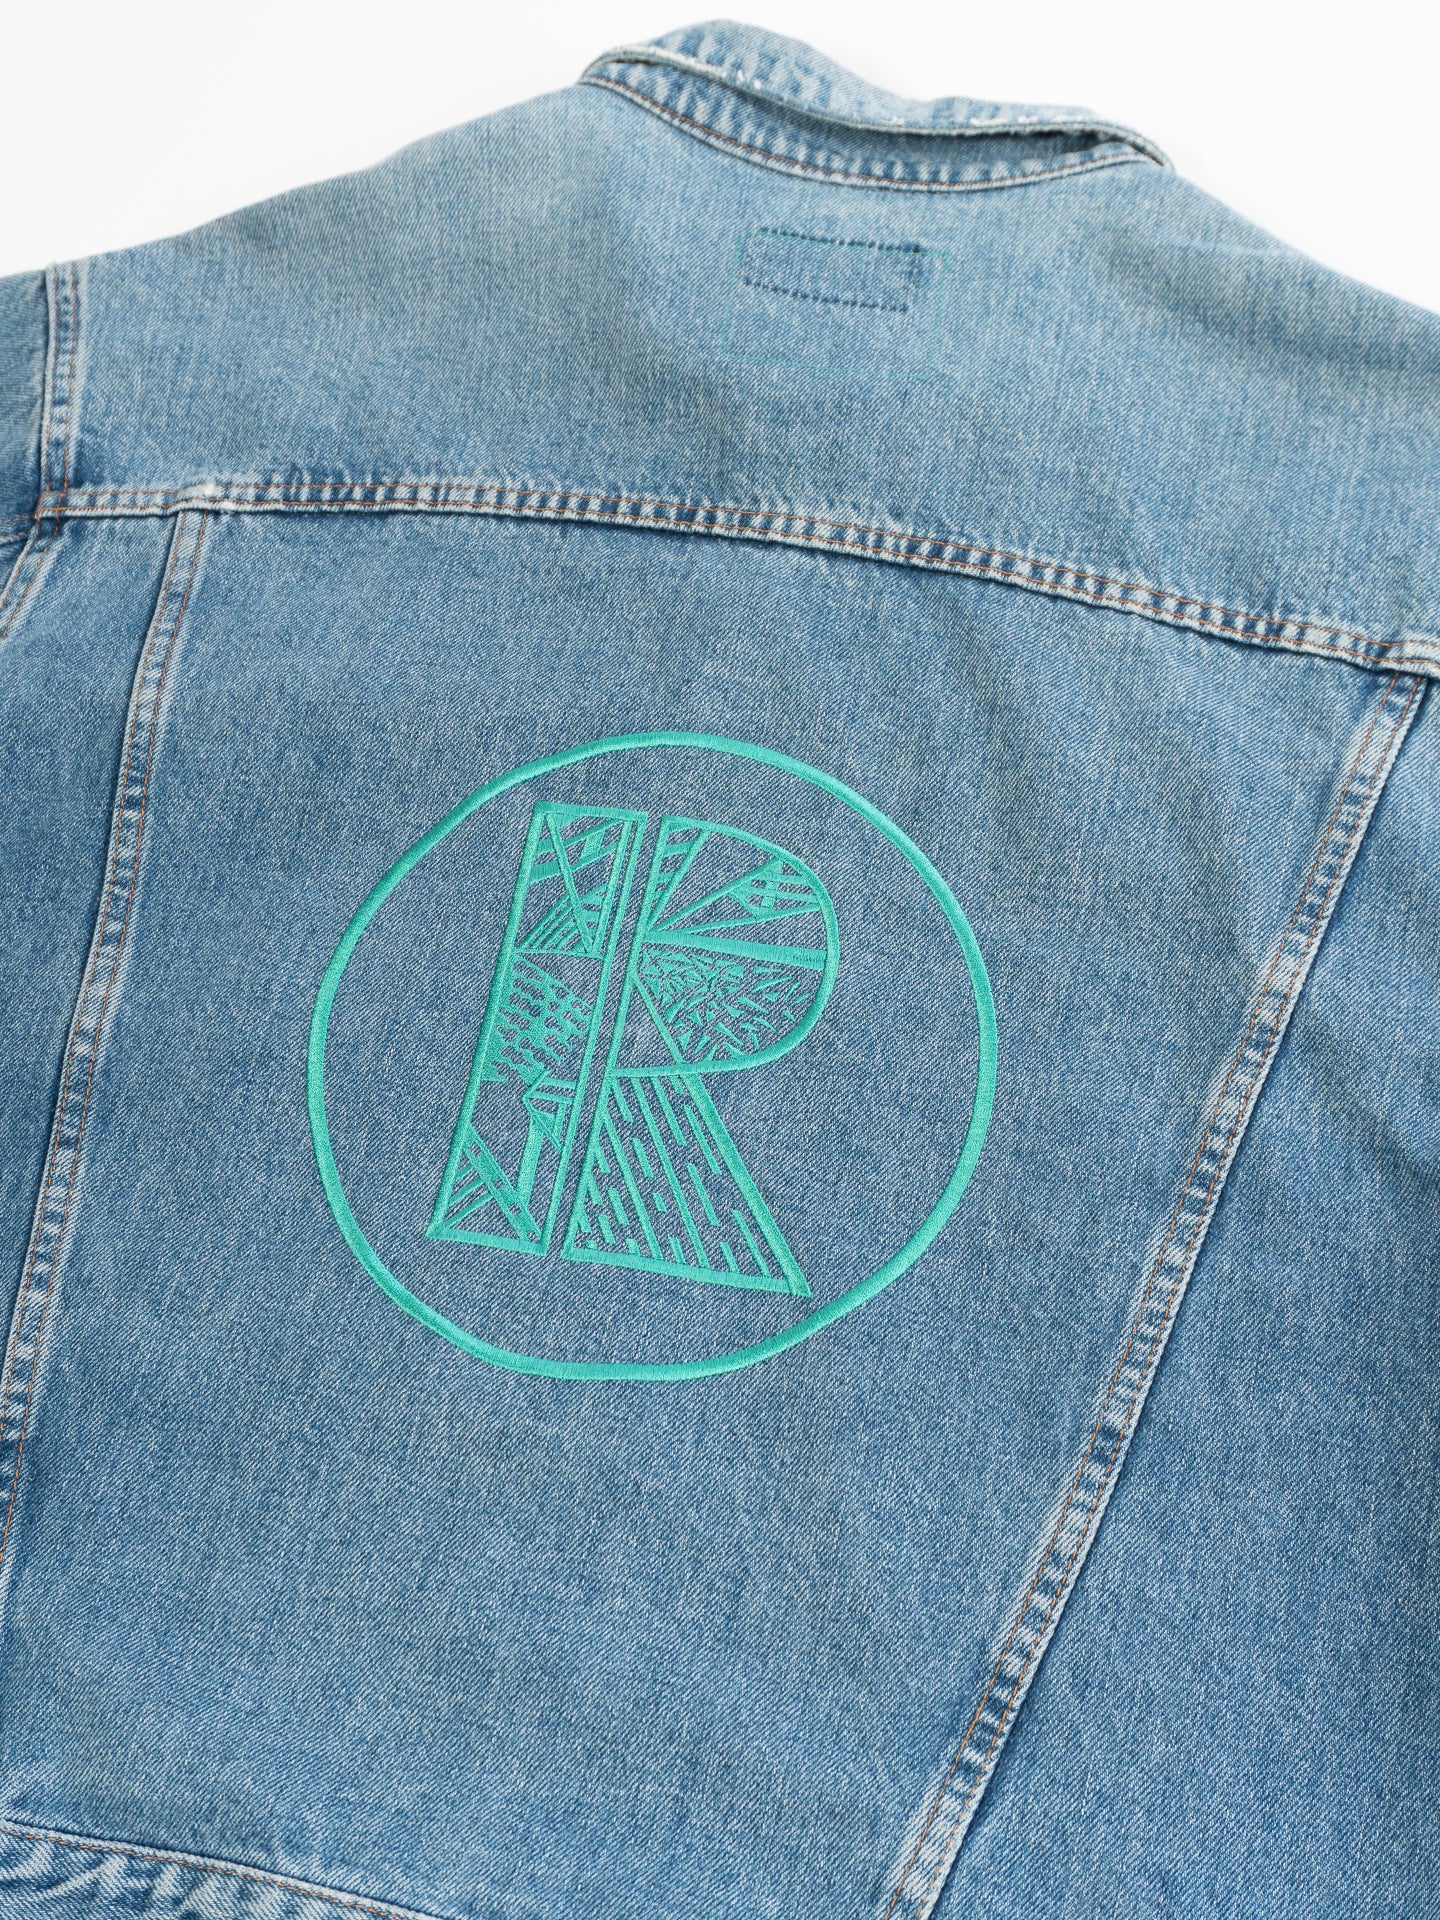 Light Blue Denim Jacket with Large Turquoise Rhetorik Logo on Back - Size XXL